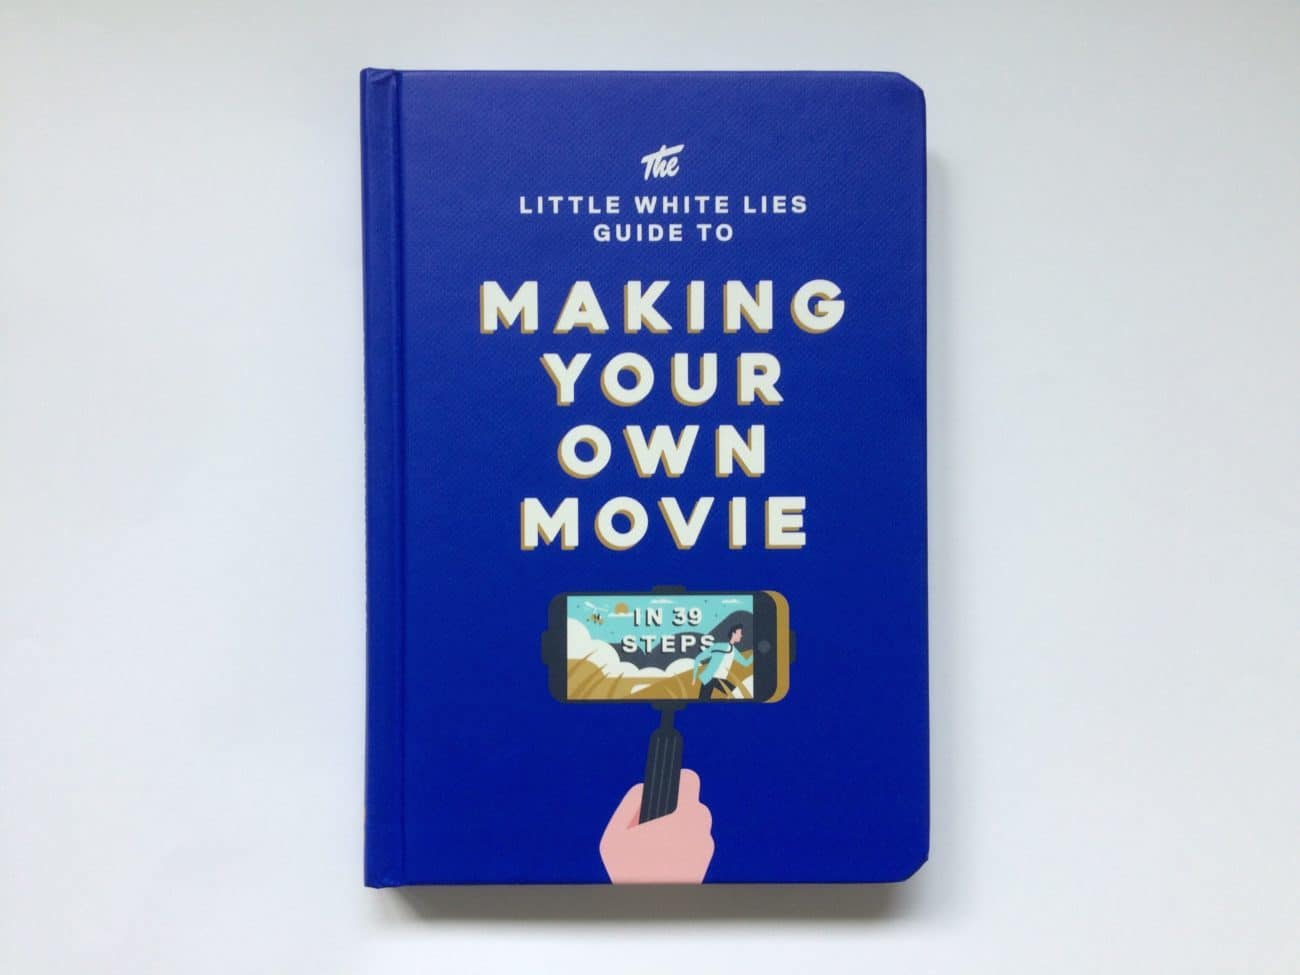 To make your own movie